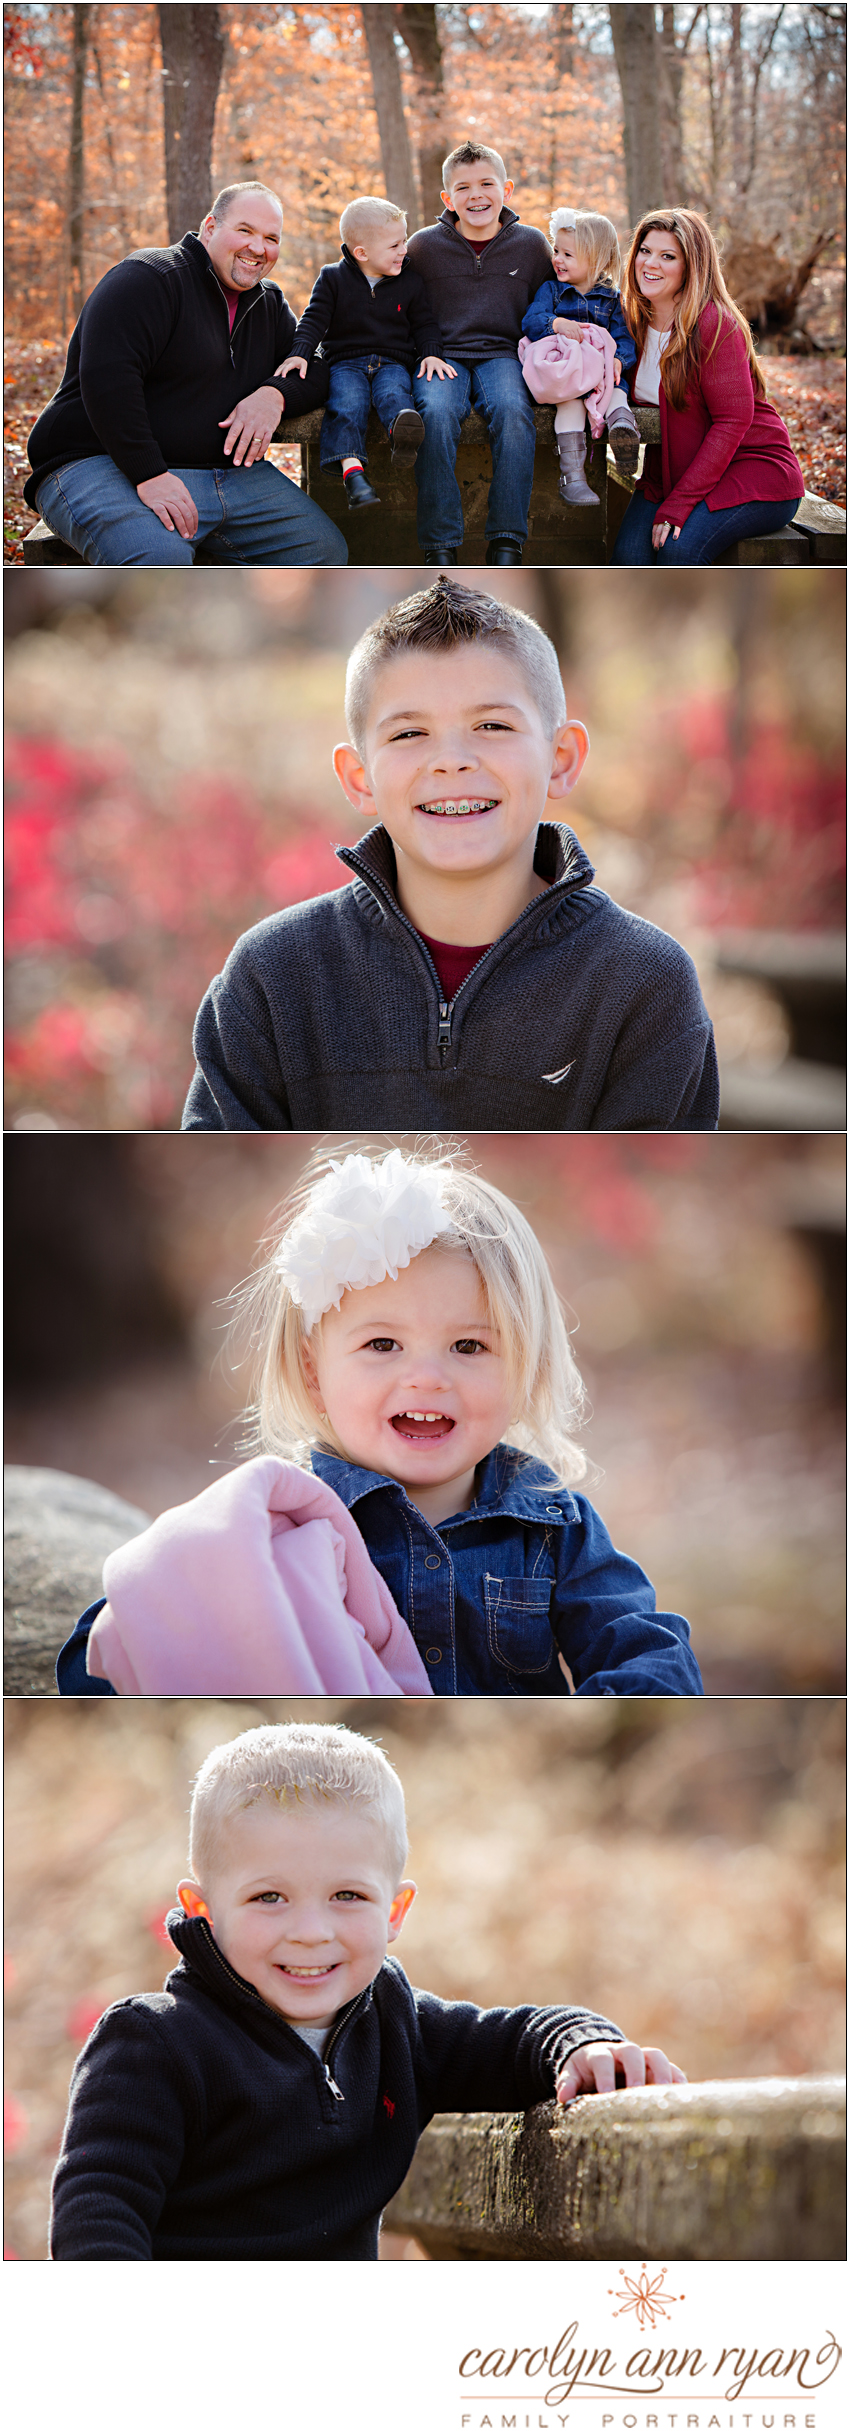 Classic Charlotte, NC Fall Family Portraits with beautiful autumn colors